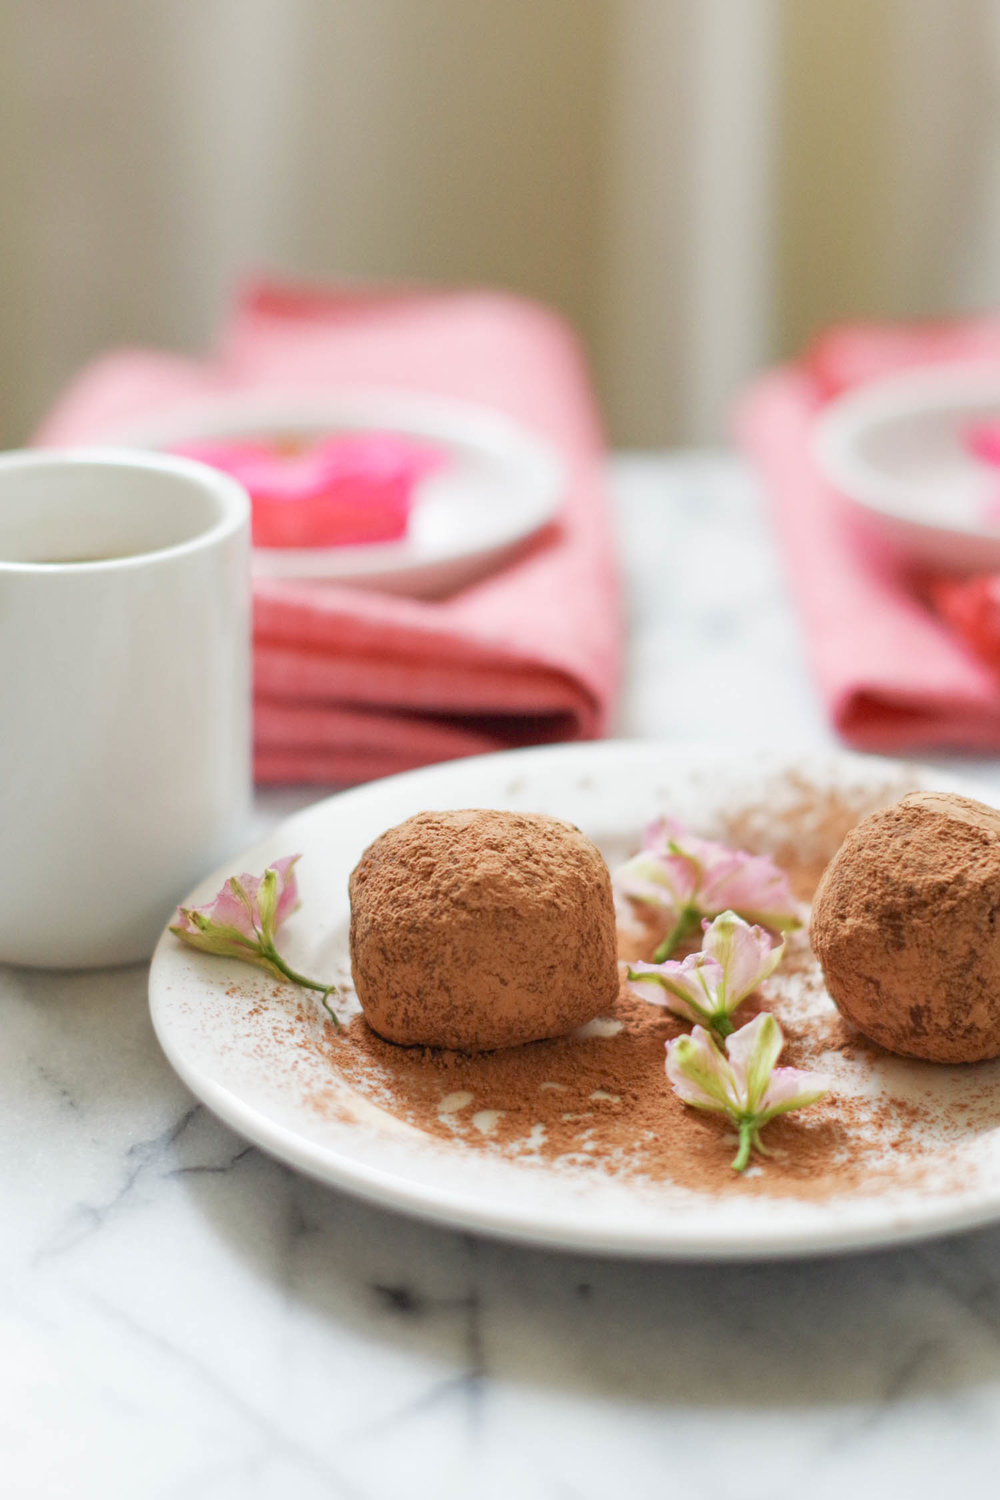 Romantic dessert:  vegan rum balls, by beautiful ingredient